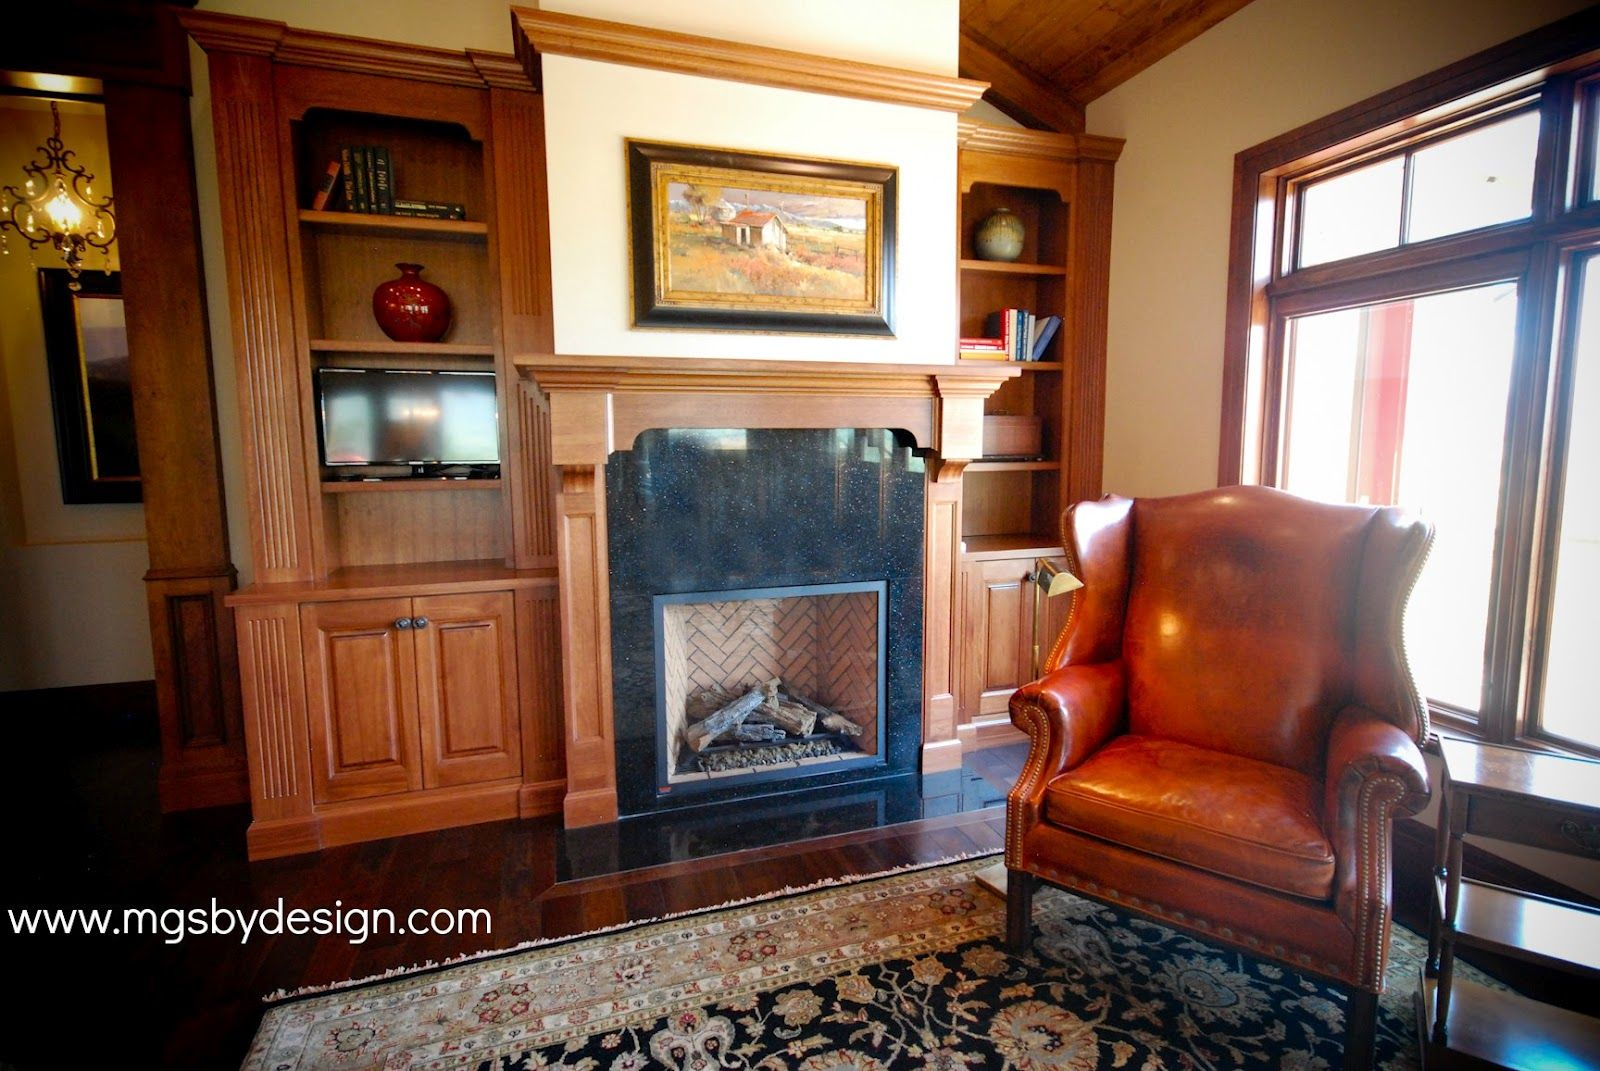 Galaxy Black Granite On The Fireplace Face And Hearth But With White Mantel Fireplace Facing White Mantel Granite Fireplace